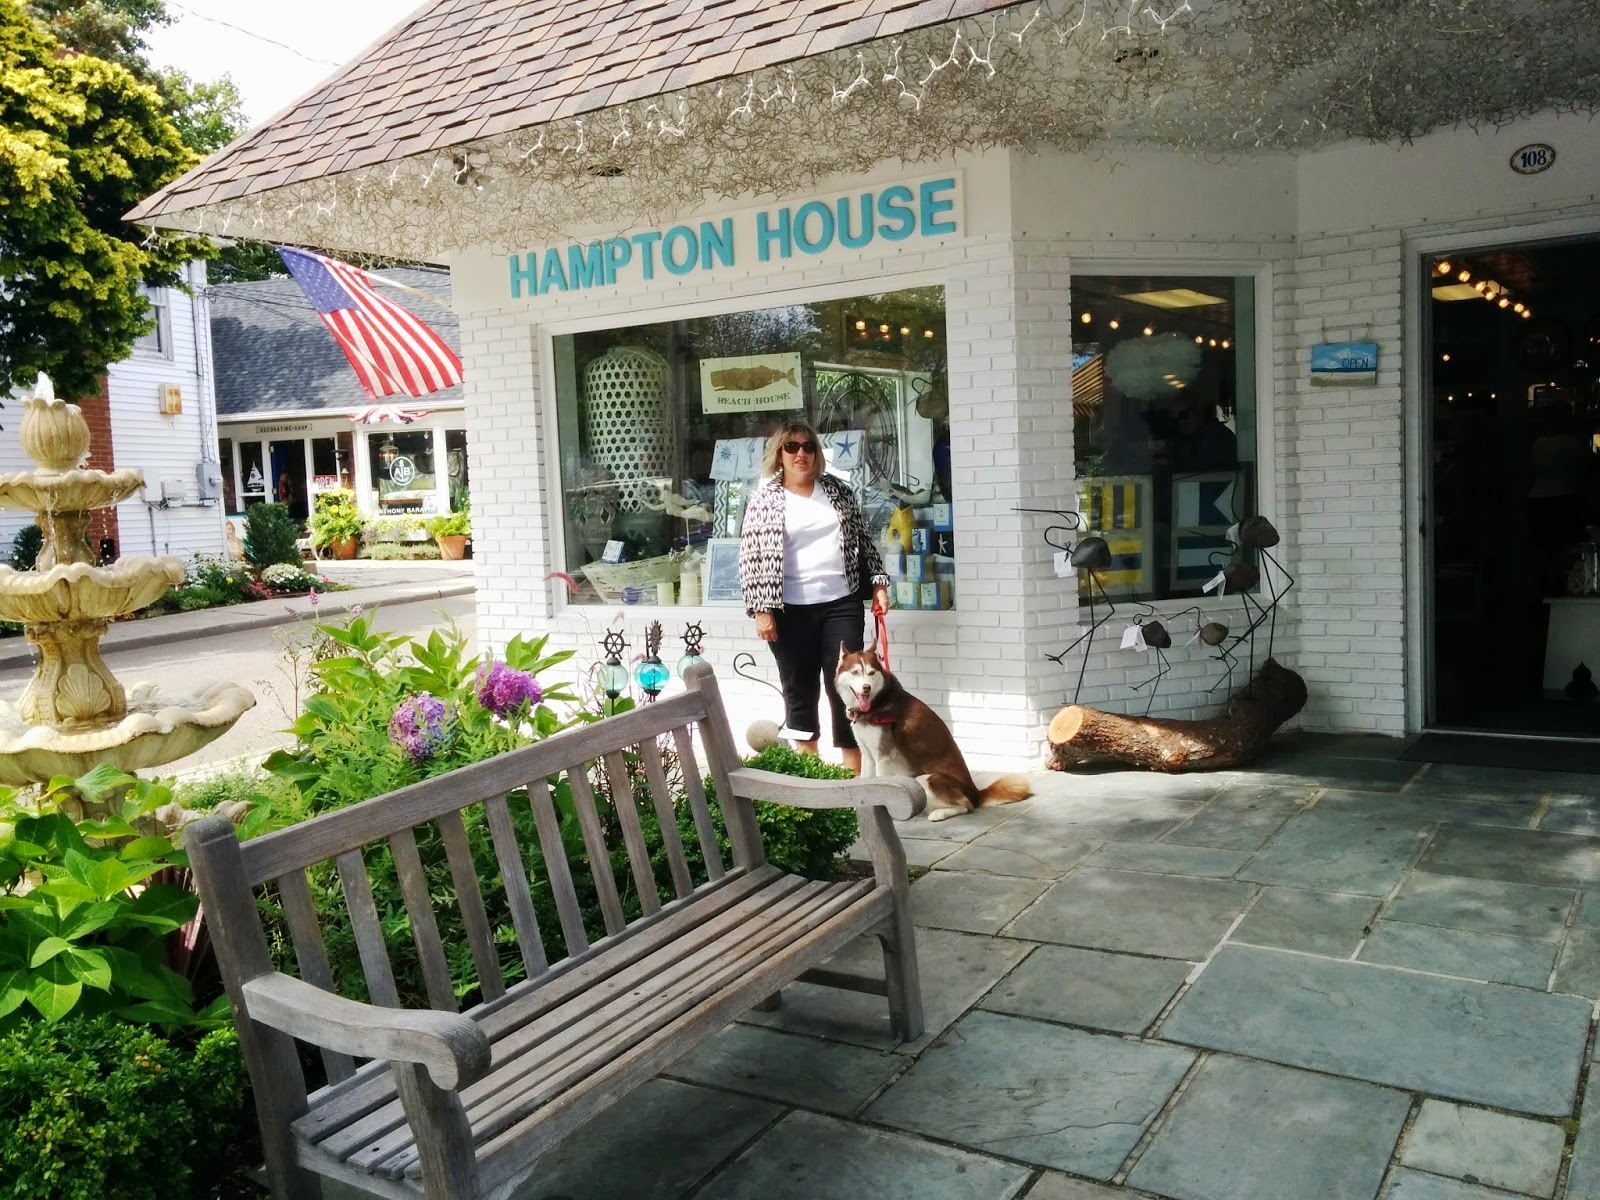 Shopping in The Hamptons, Long Island NY is pricey but you can score great deals in the Fall